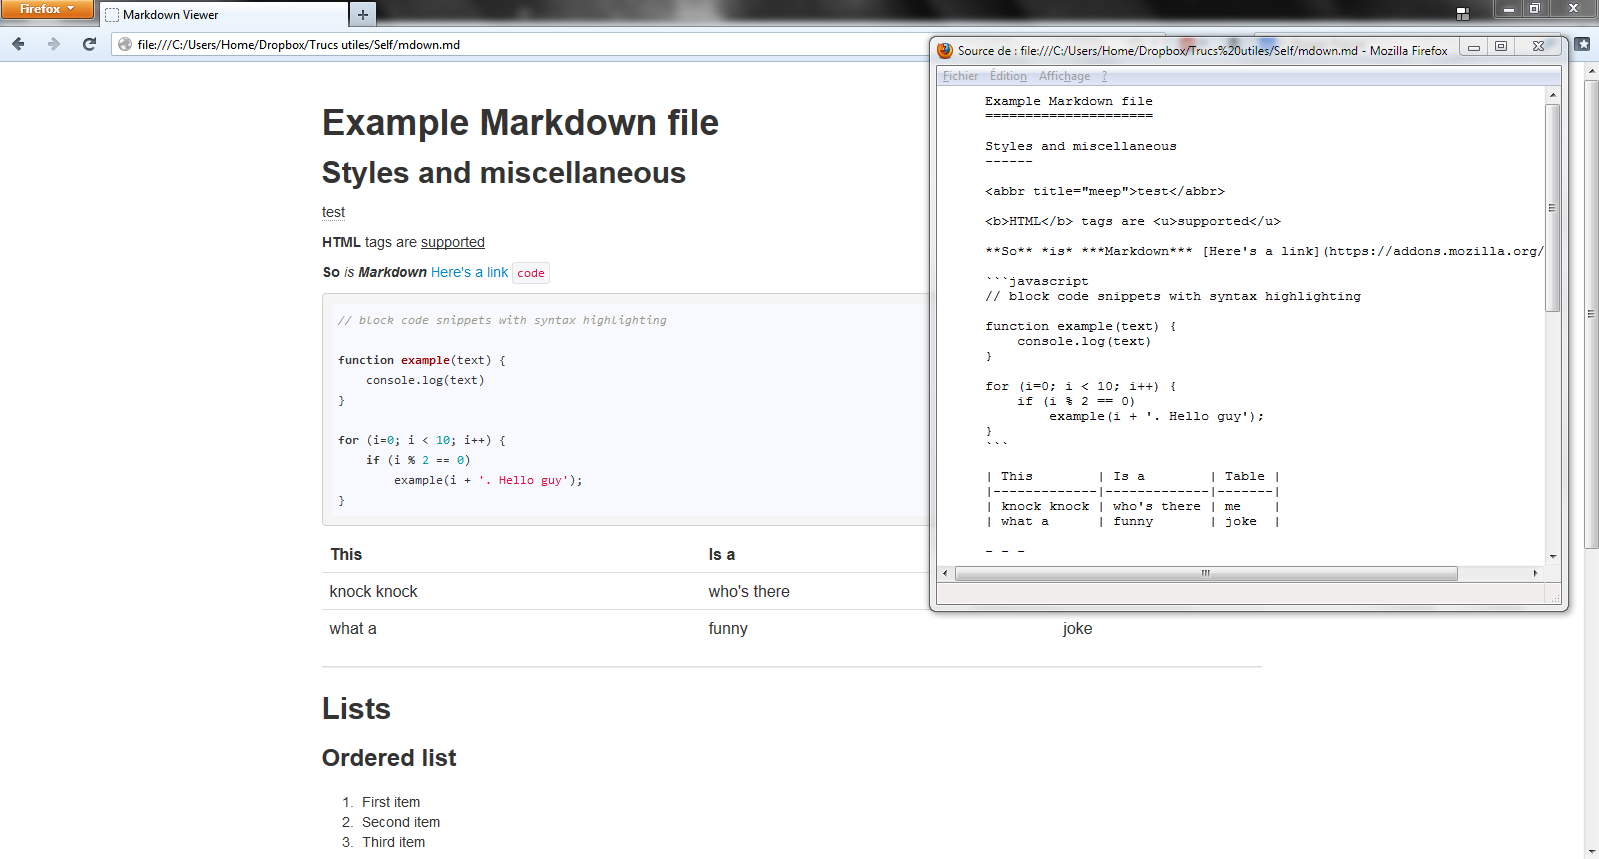 Markdown Viewer rendering with an example file